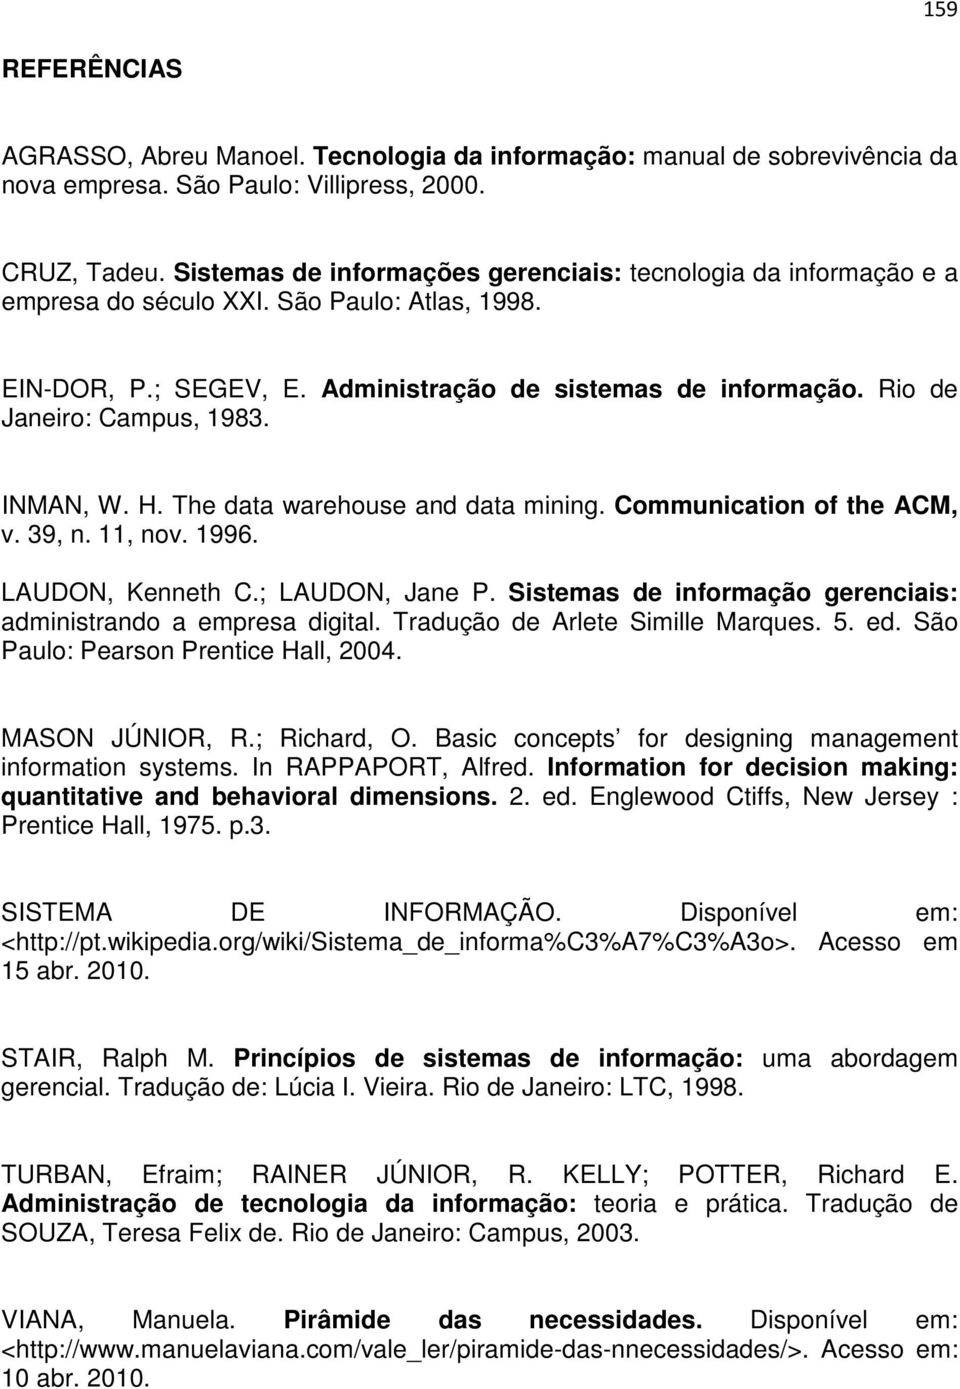 Rio de Janeiro: Campus, 1983. INMAN, W. H. The data warehouse and data mining. Communication of the ACM, v. 39, n. 11, nov. 1996. LAUDON, Kenneth C.; LAUDON, Jane P.